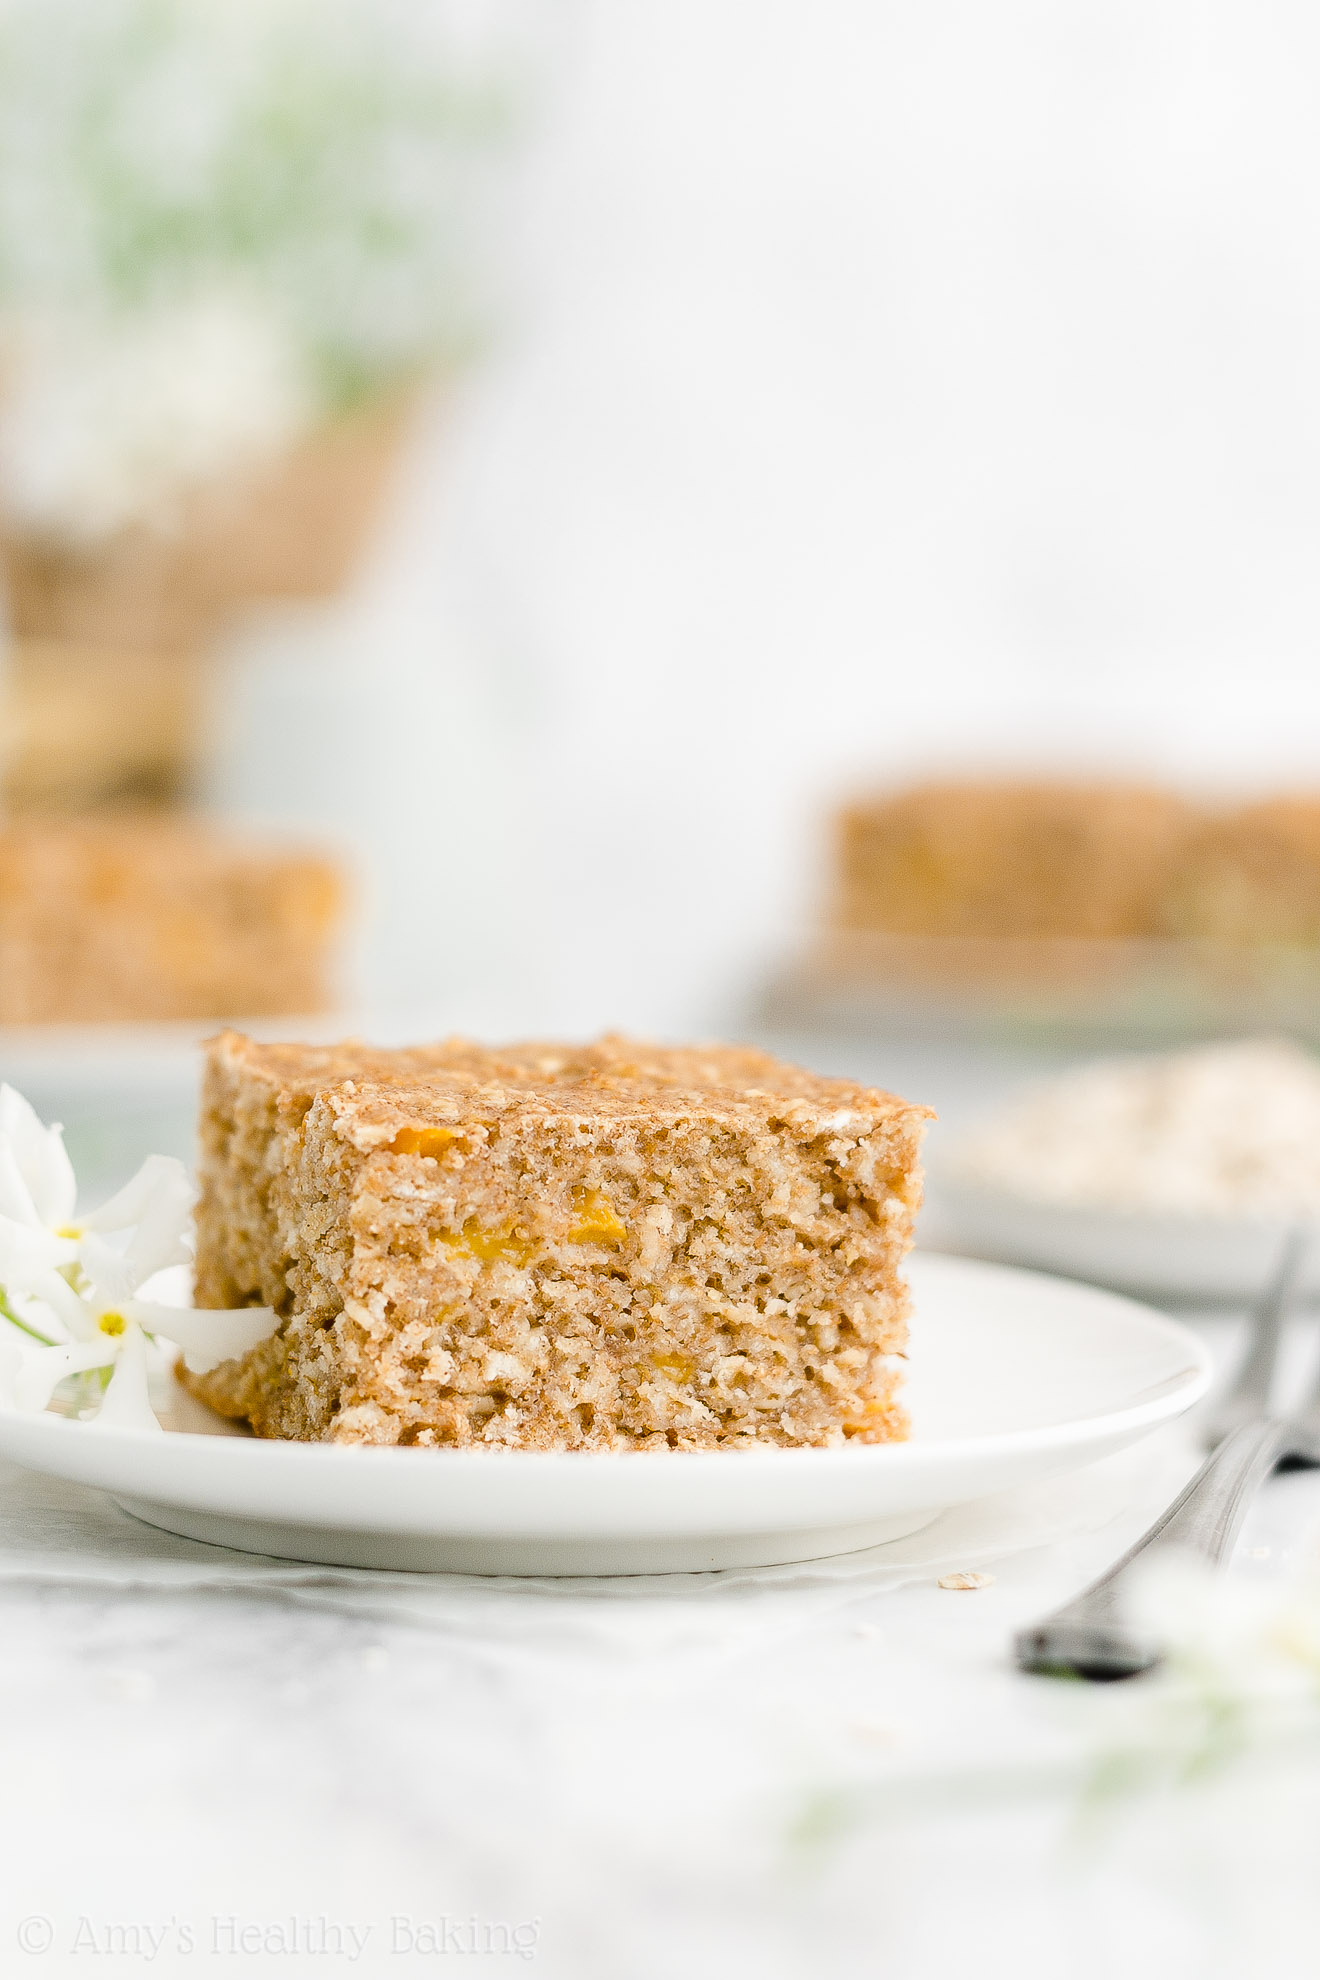 Easy Healthy Low Fat Gluten Free Greek Yogurt Fresh Peach Oatmeal Snack Cake